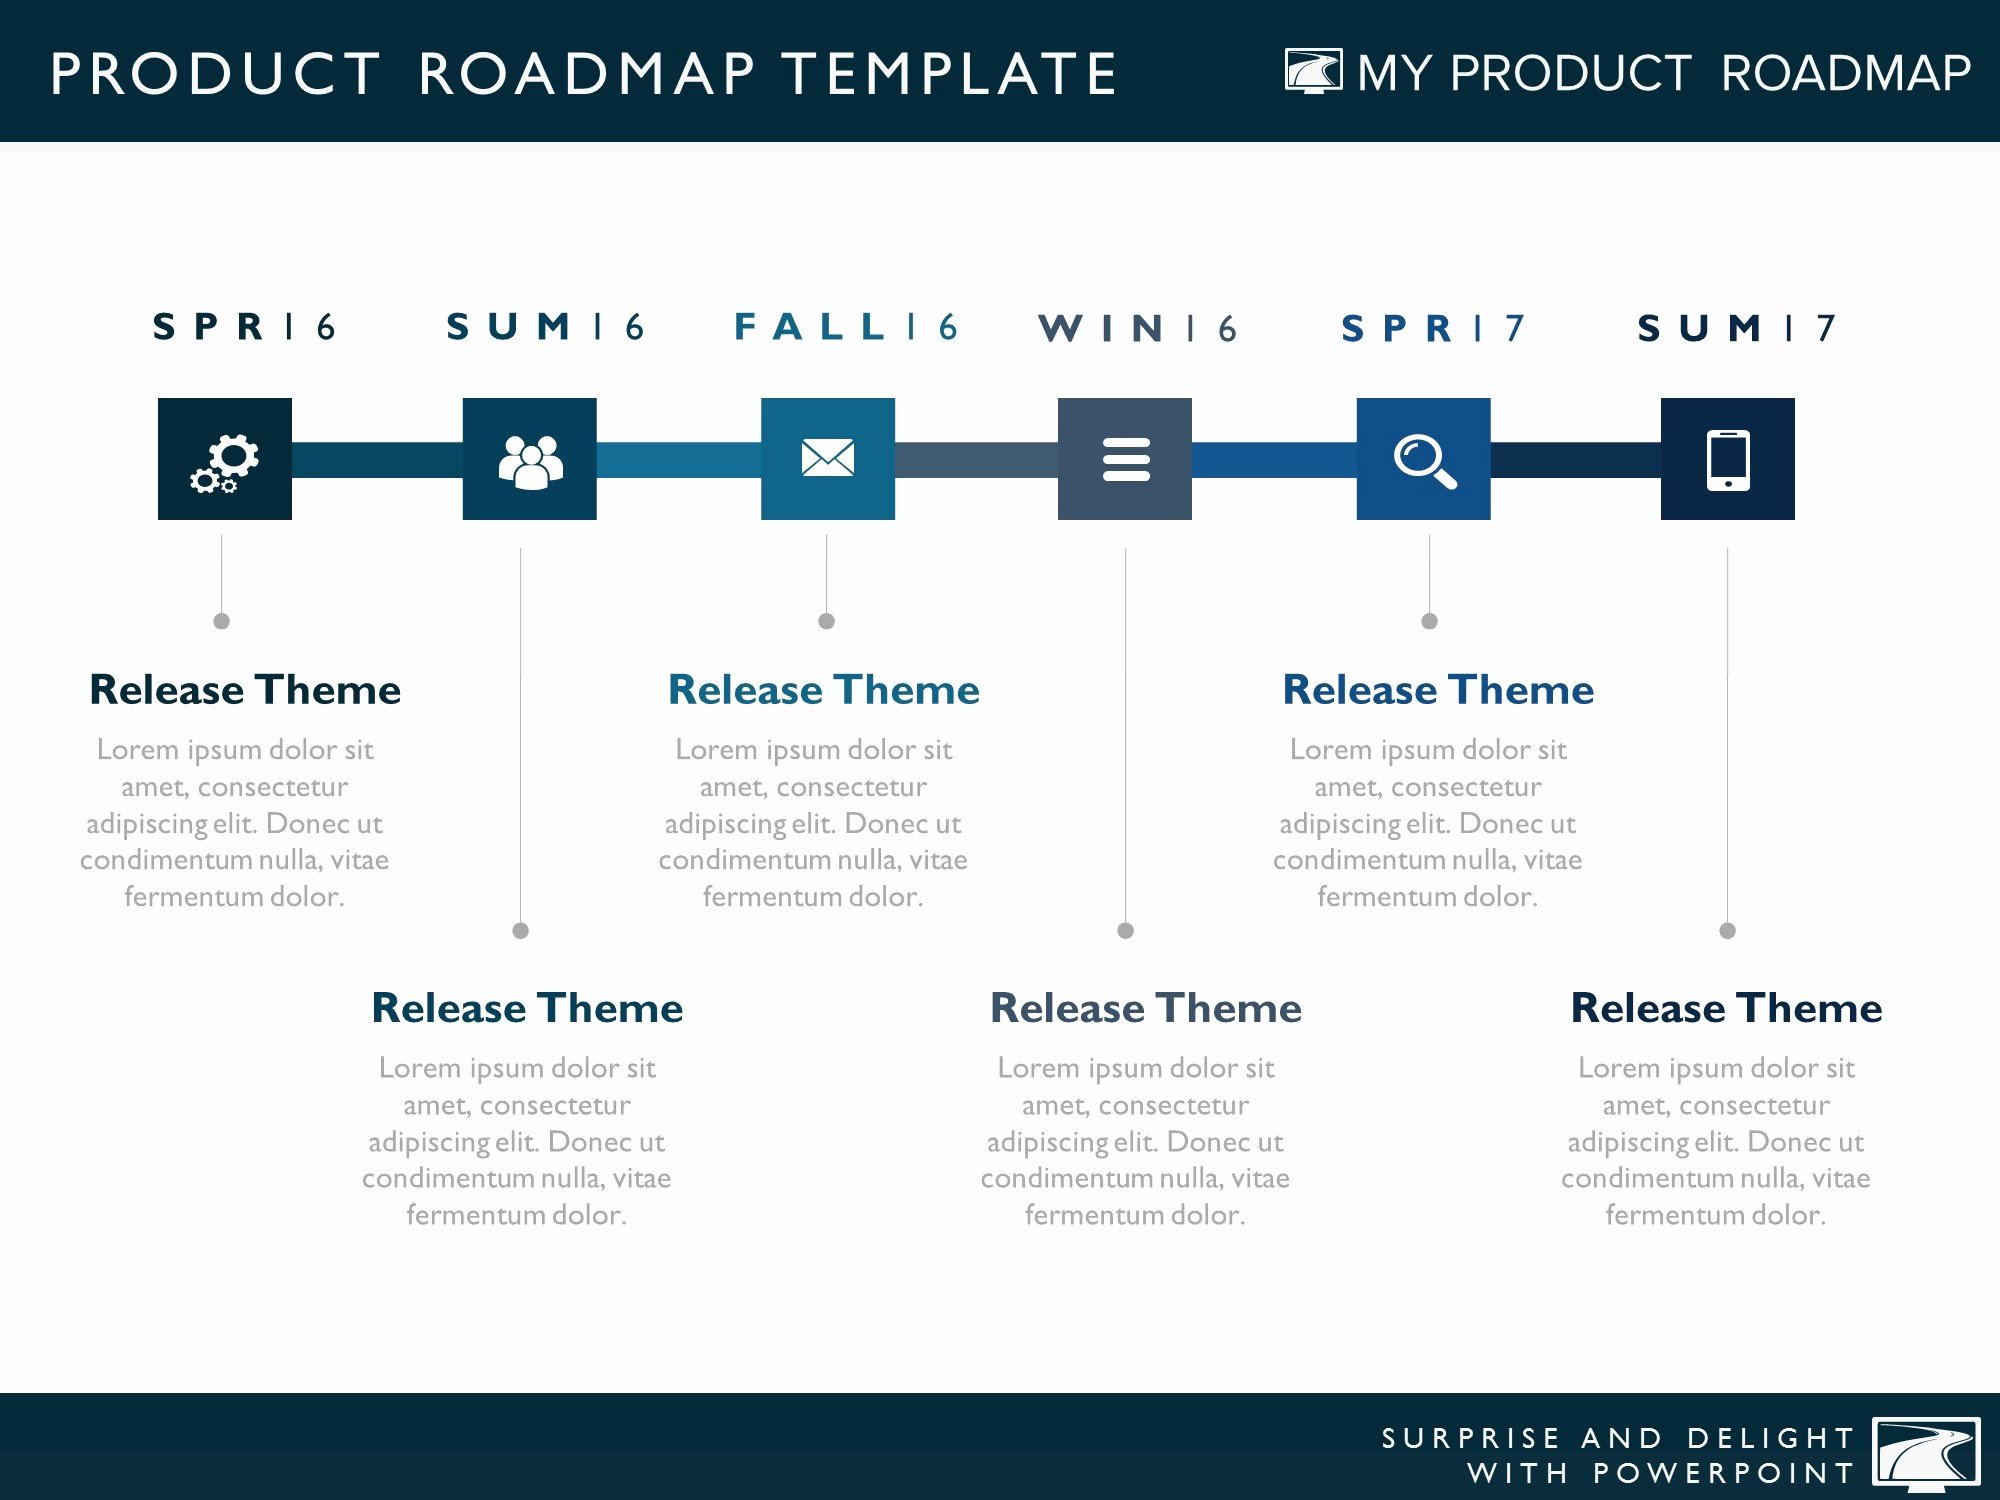 Roadmap Ppt Template Free Elegant Product Roadmap Templates for Powerpoint